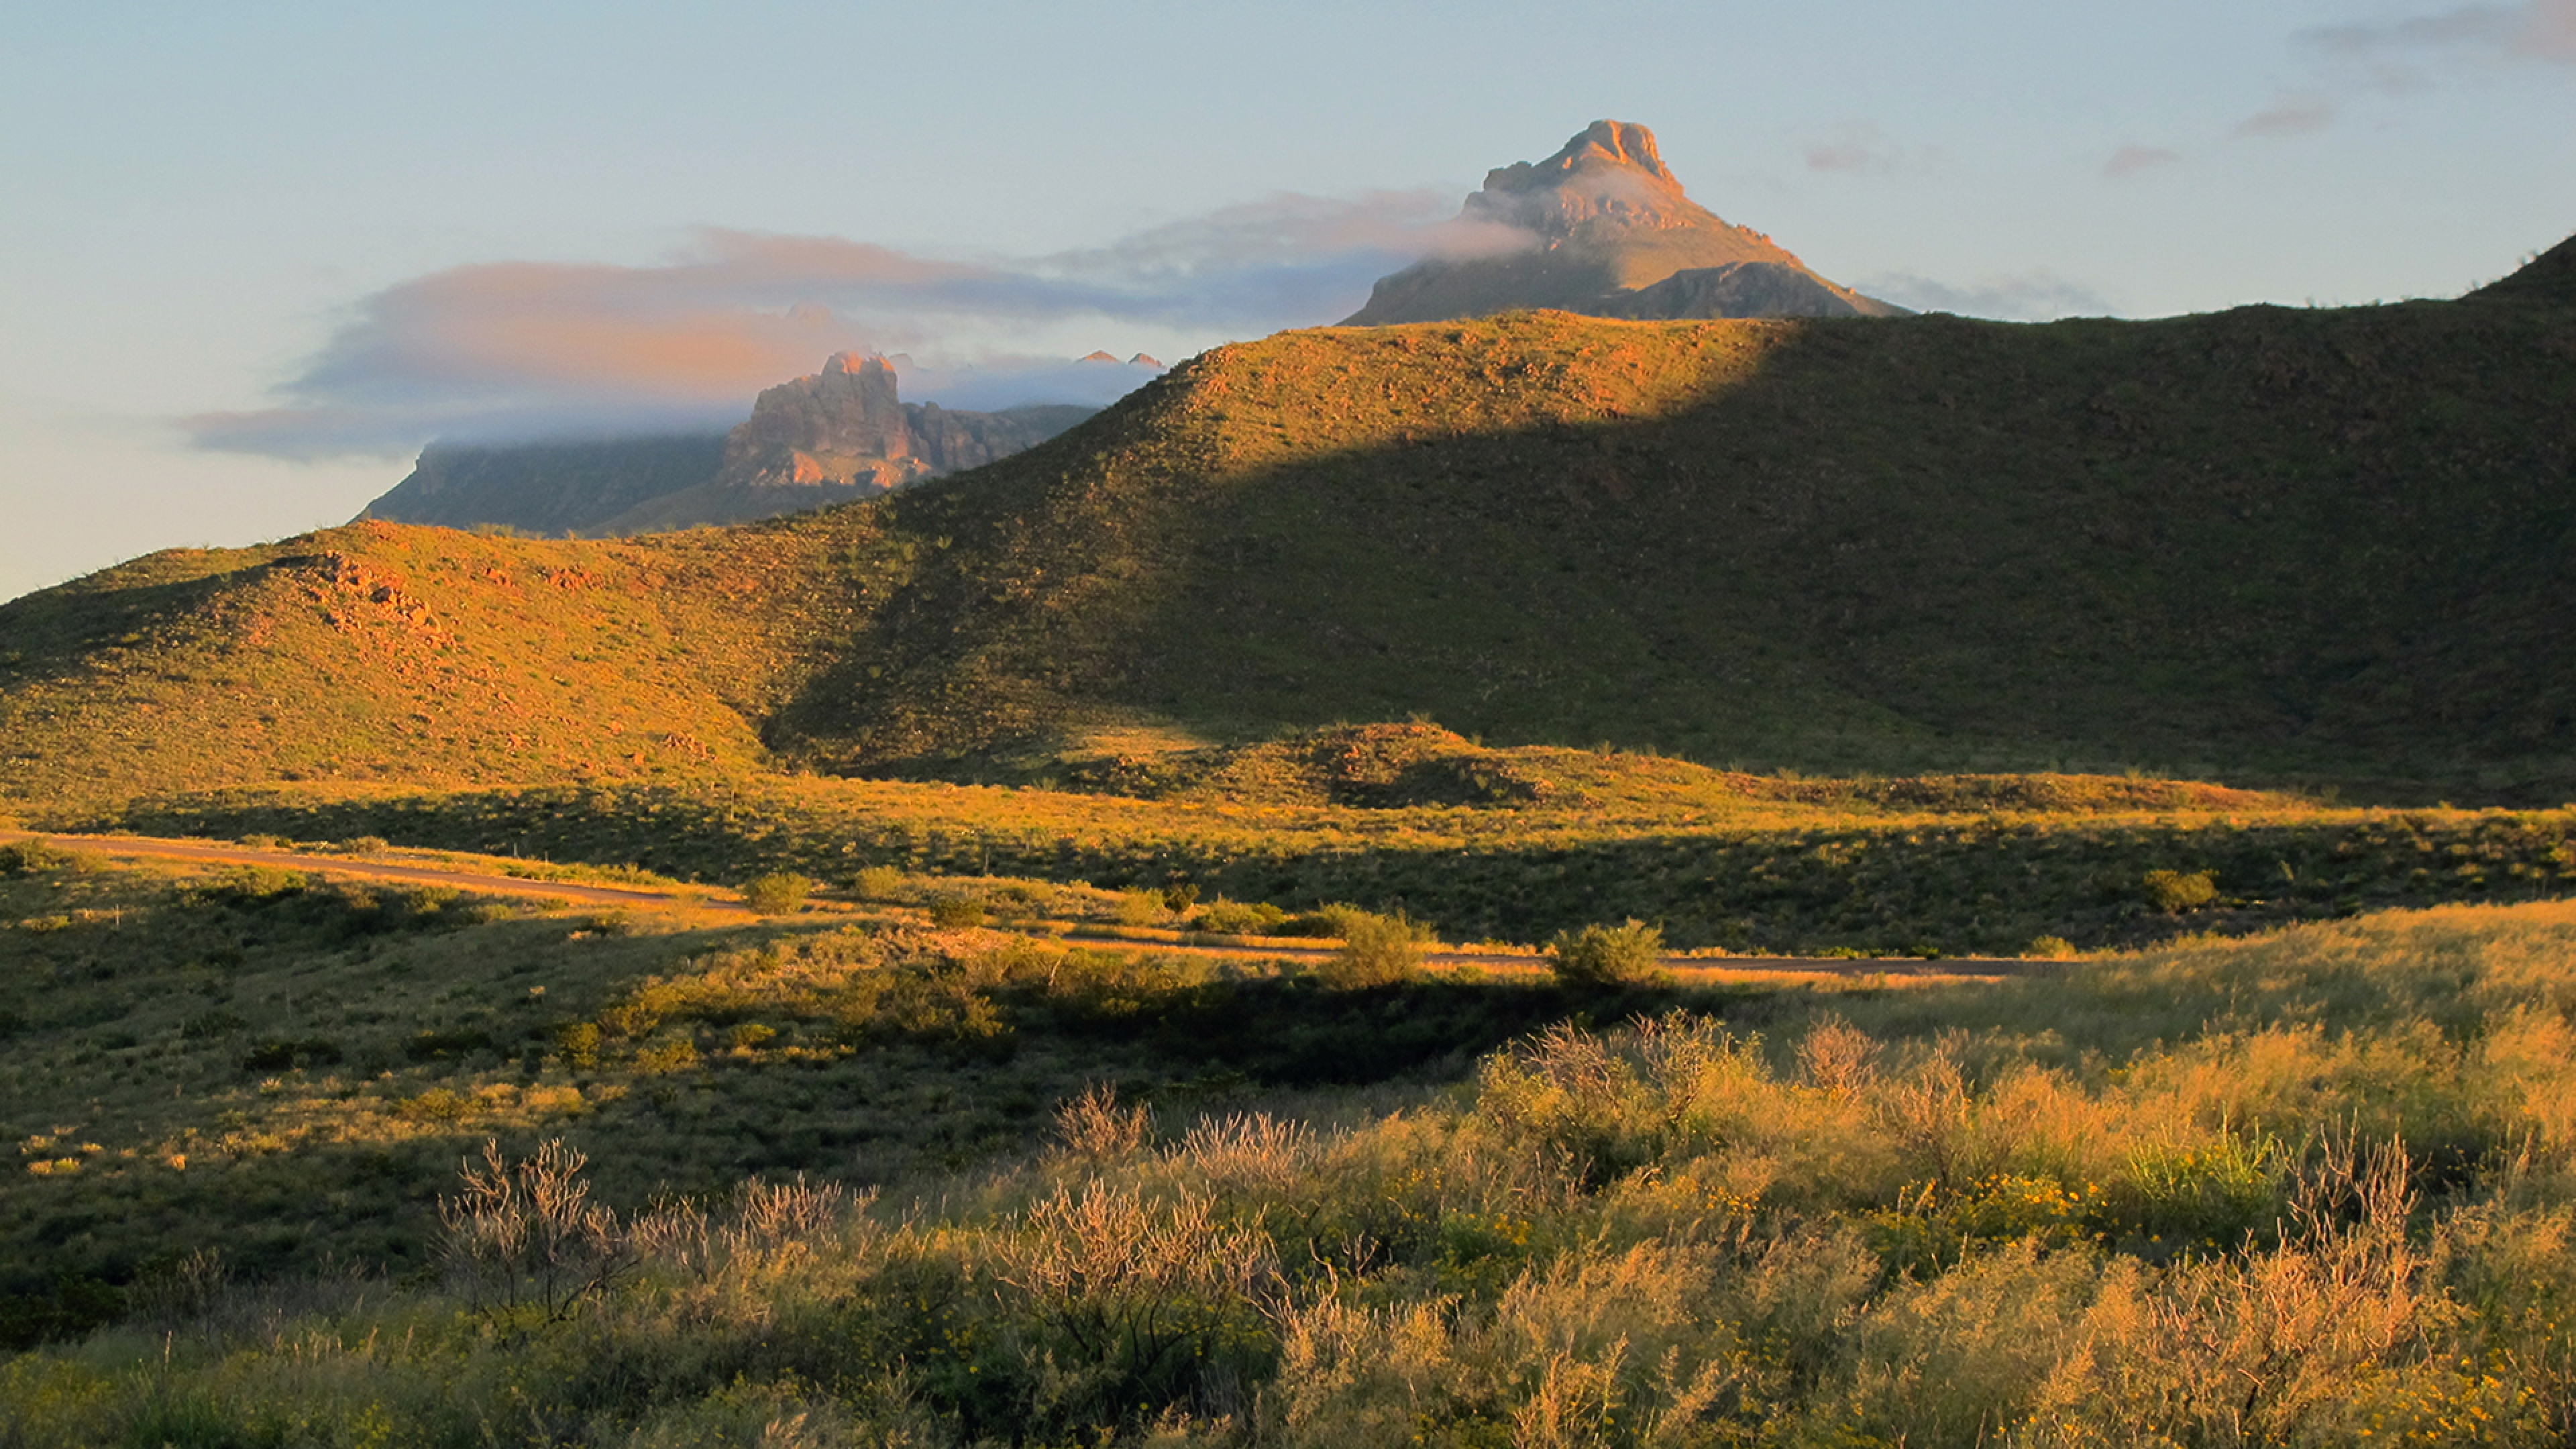 Afternoon Light Across the Chisos Mountains